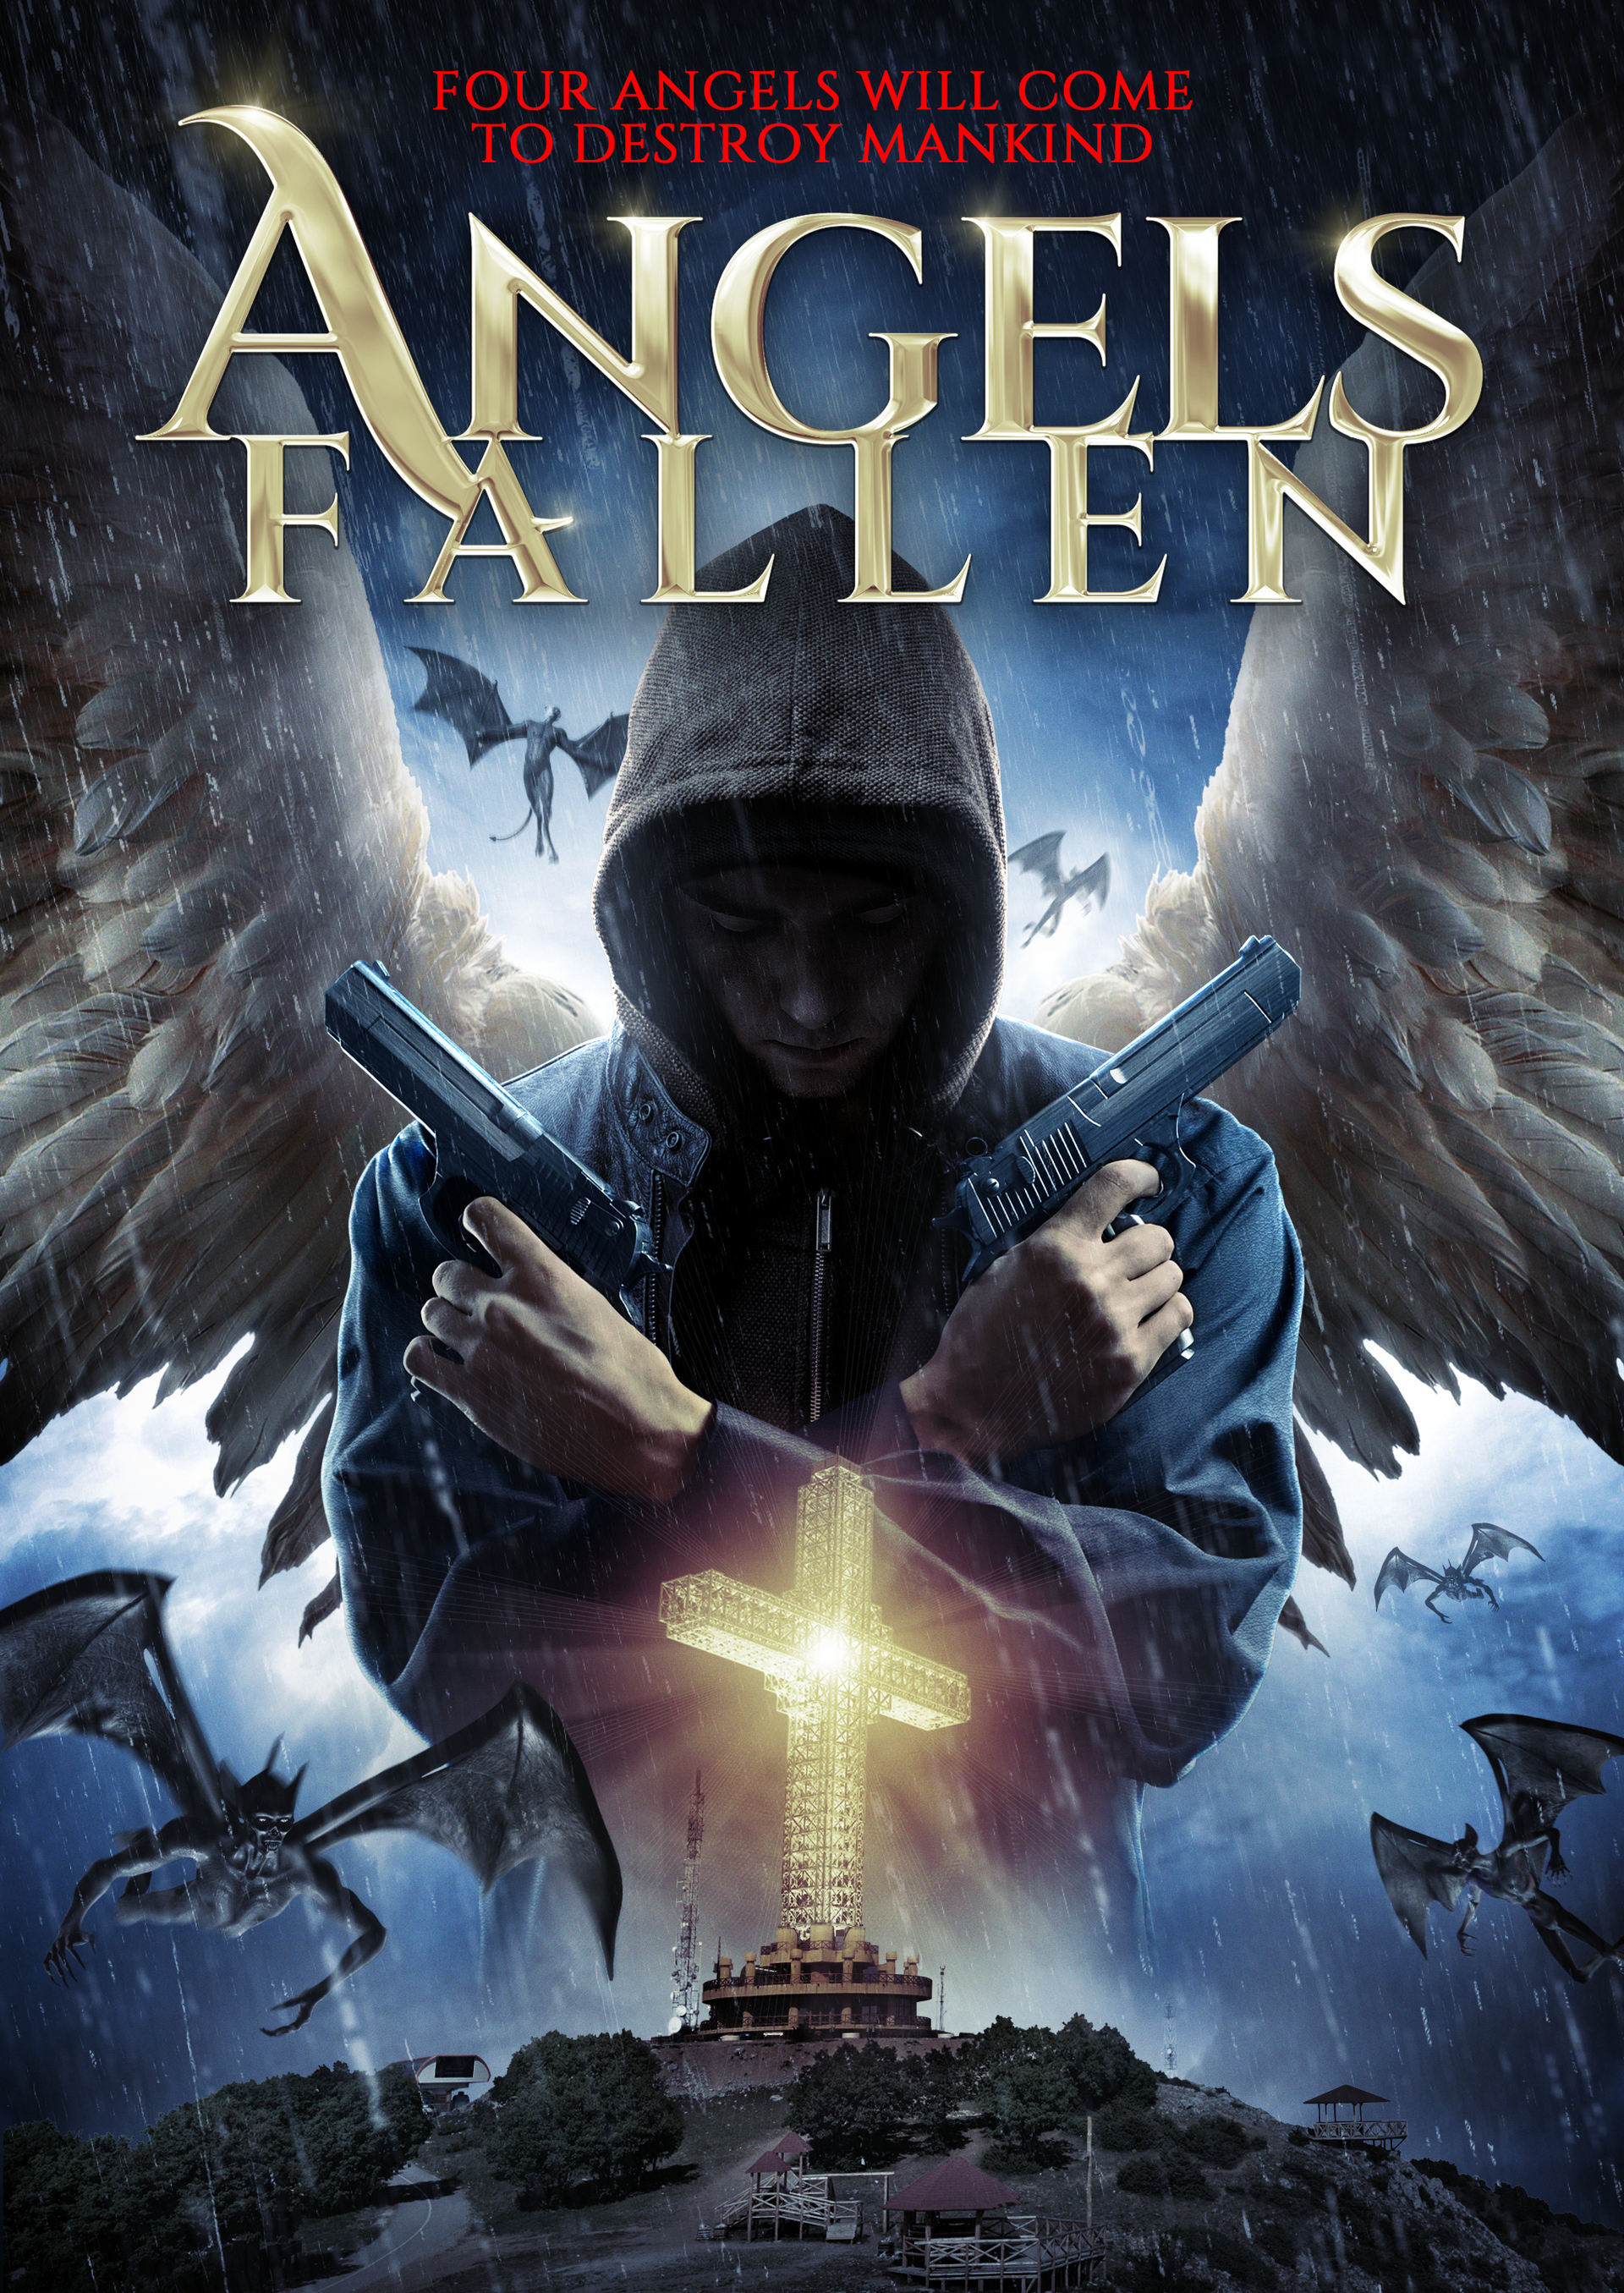 ANGELS_FALLEN-KEY_ART-FLAT_1.jpg?1571682852